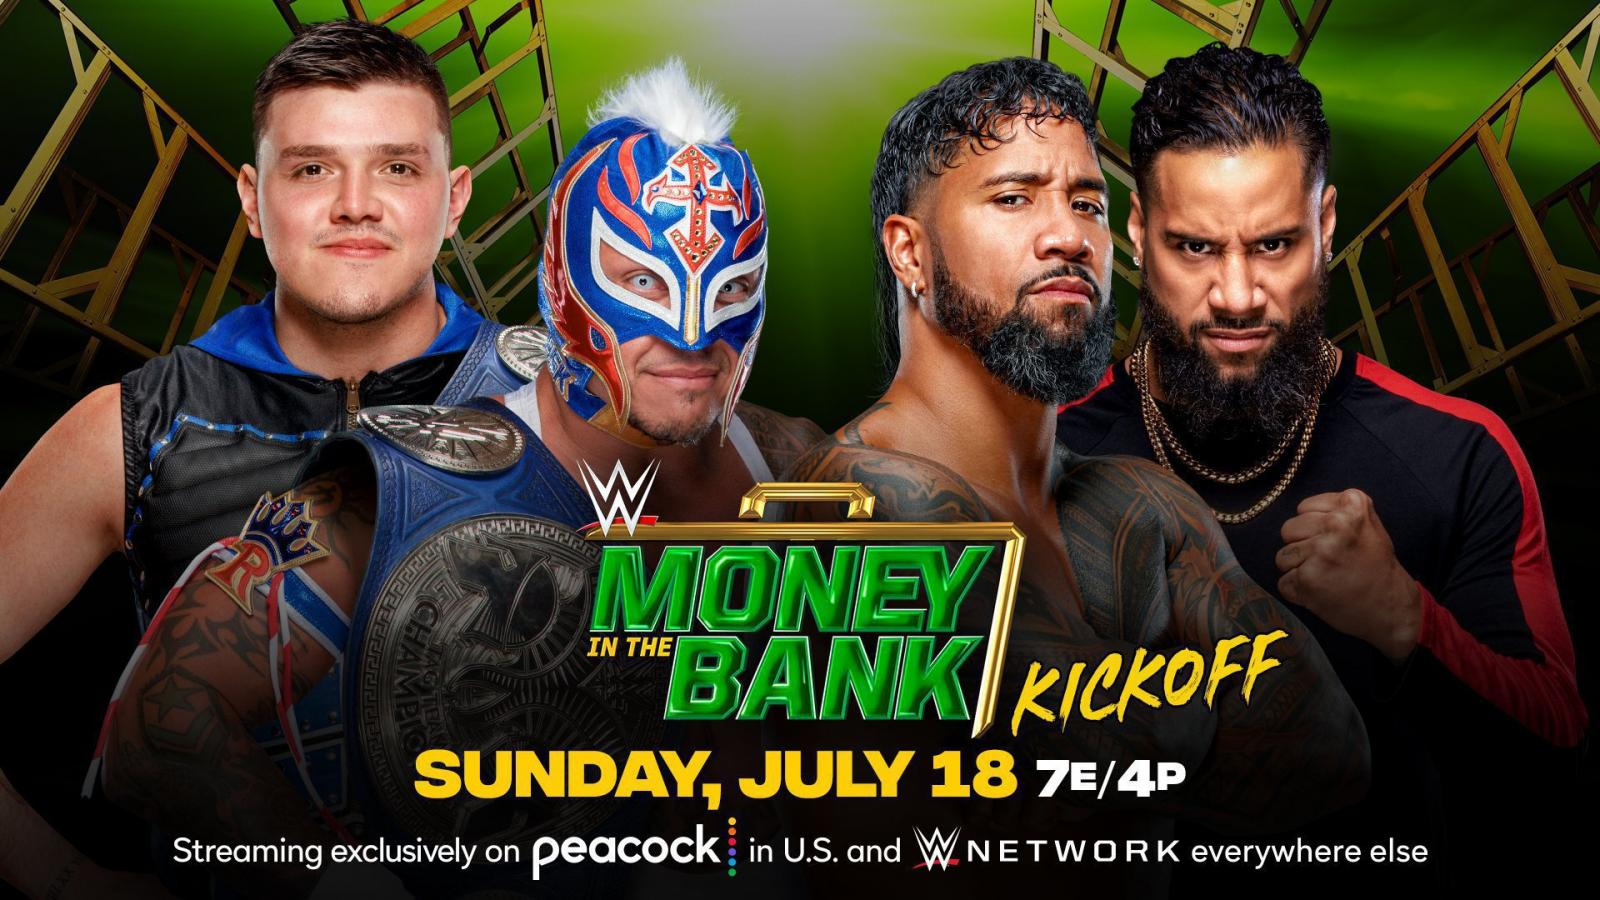 Title Match Announce For WWE Money In The Bank Kickoff